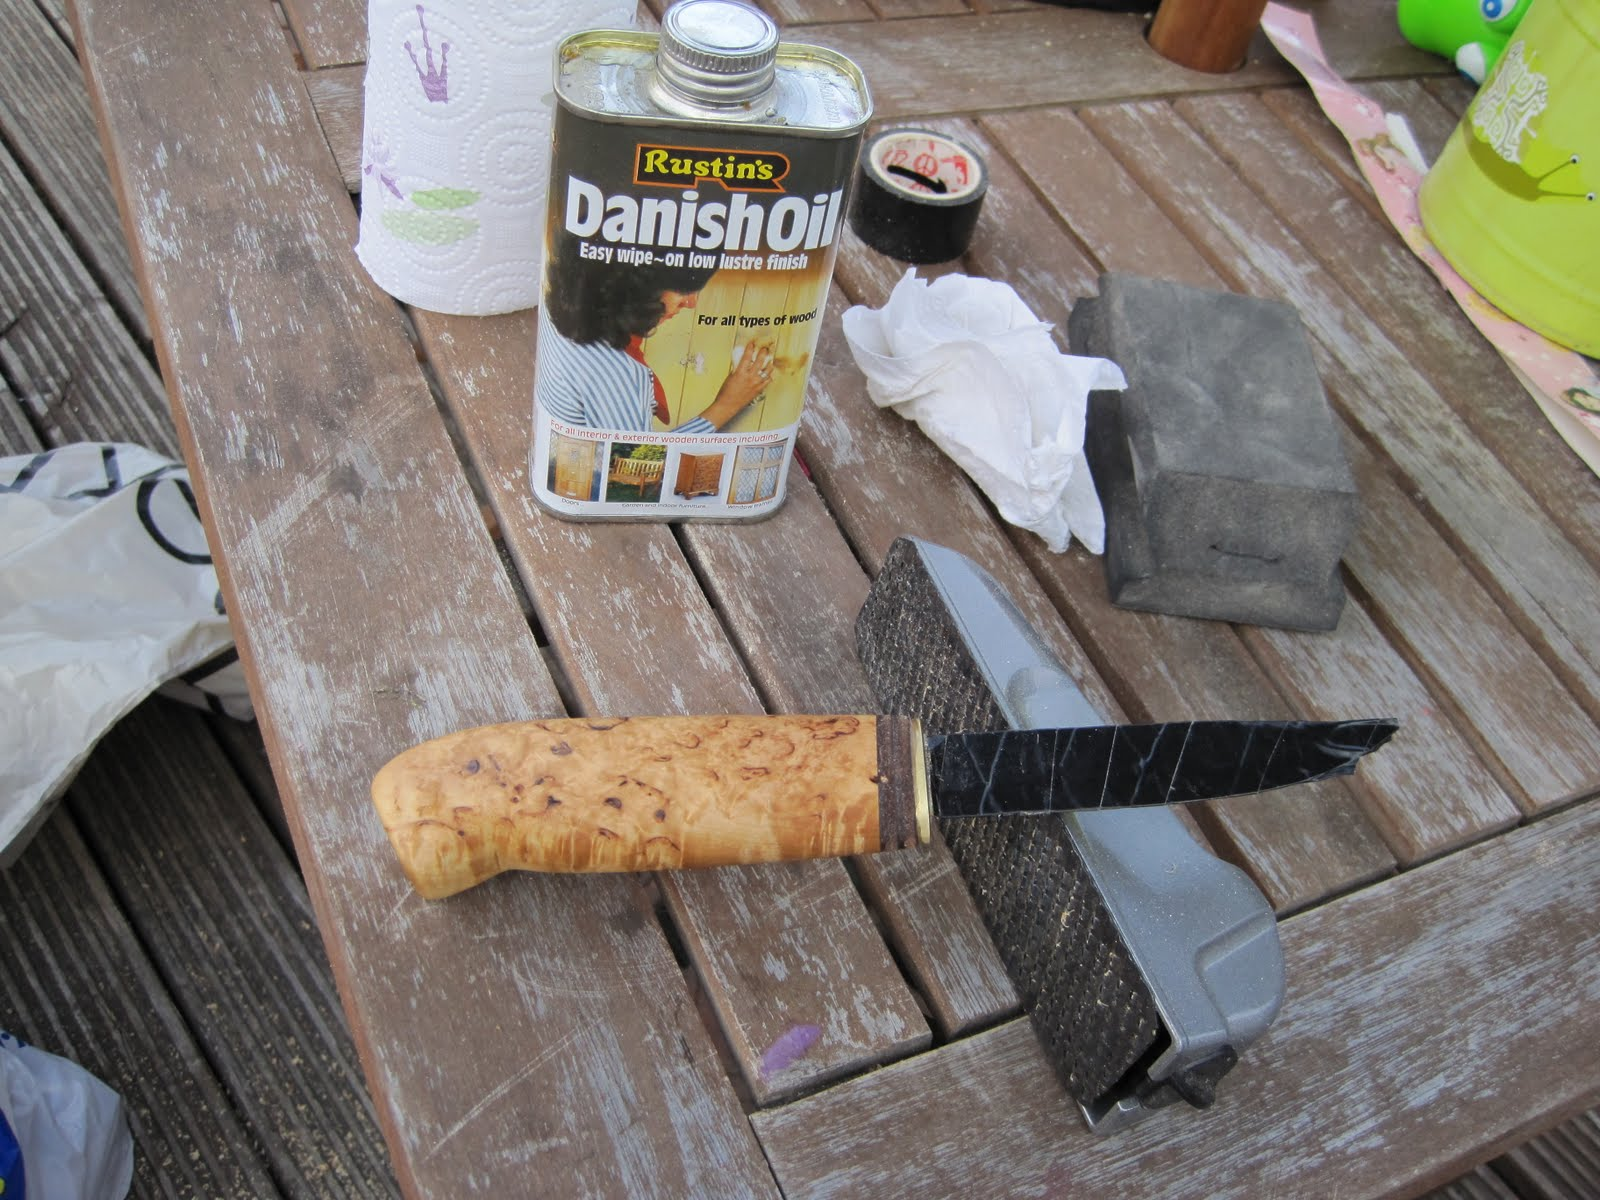 bushcraft projects Our beginner's guide on how to whittle will help get your first whittling project   and versatile knife that is ideal for general bushcraft and burly whittling projects.